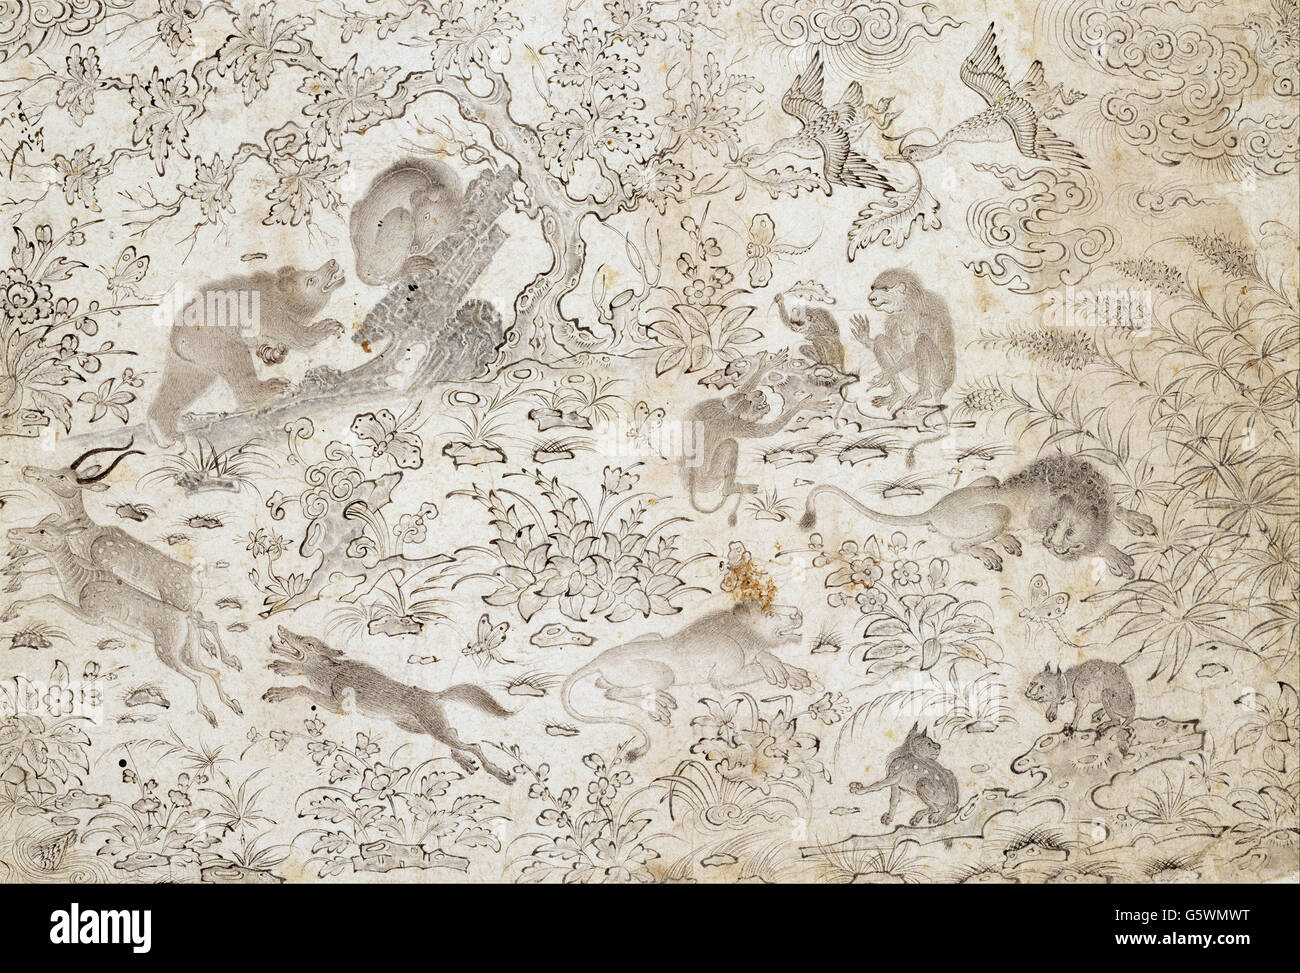 Master Muhammad Siyah Qalam - Birds and Beasts in a Flowery Landscape - - Stock Image